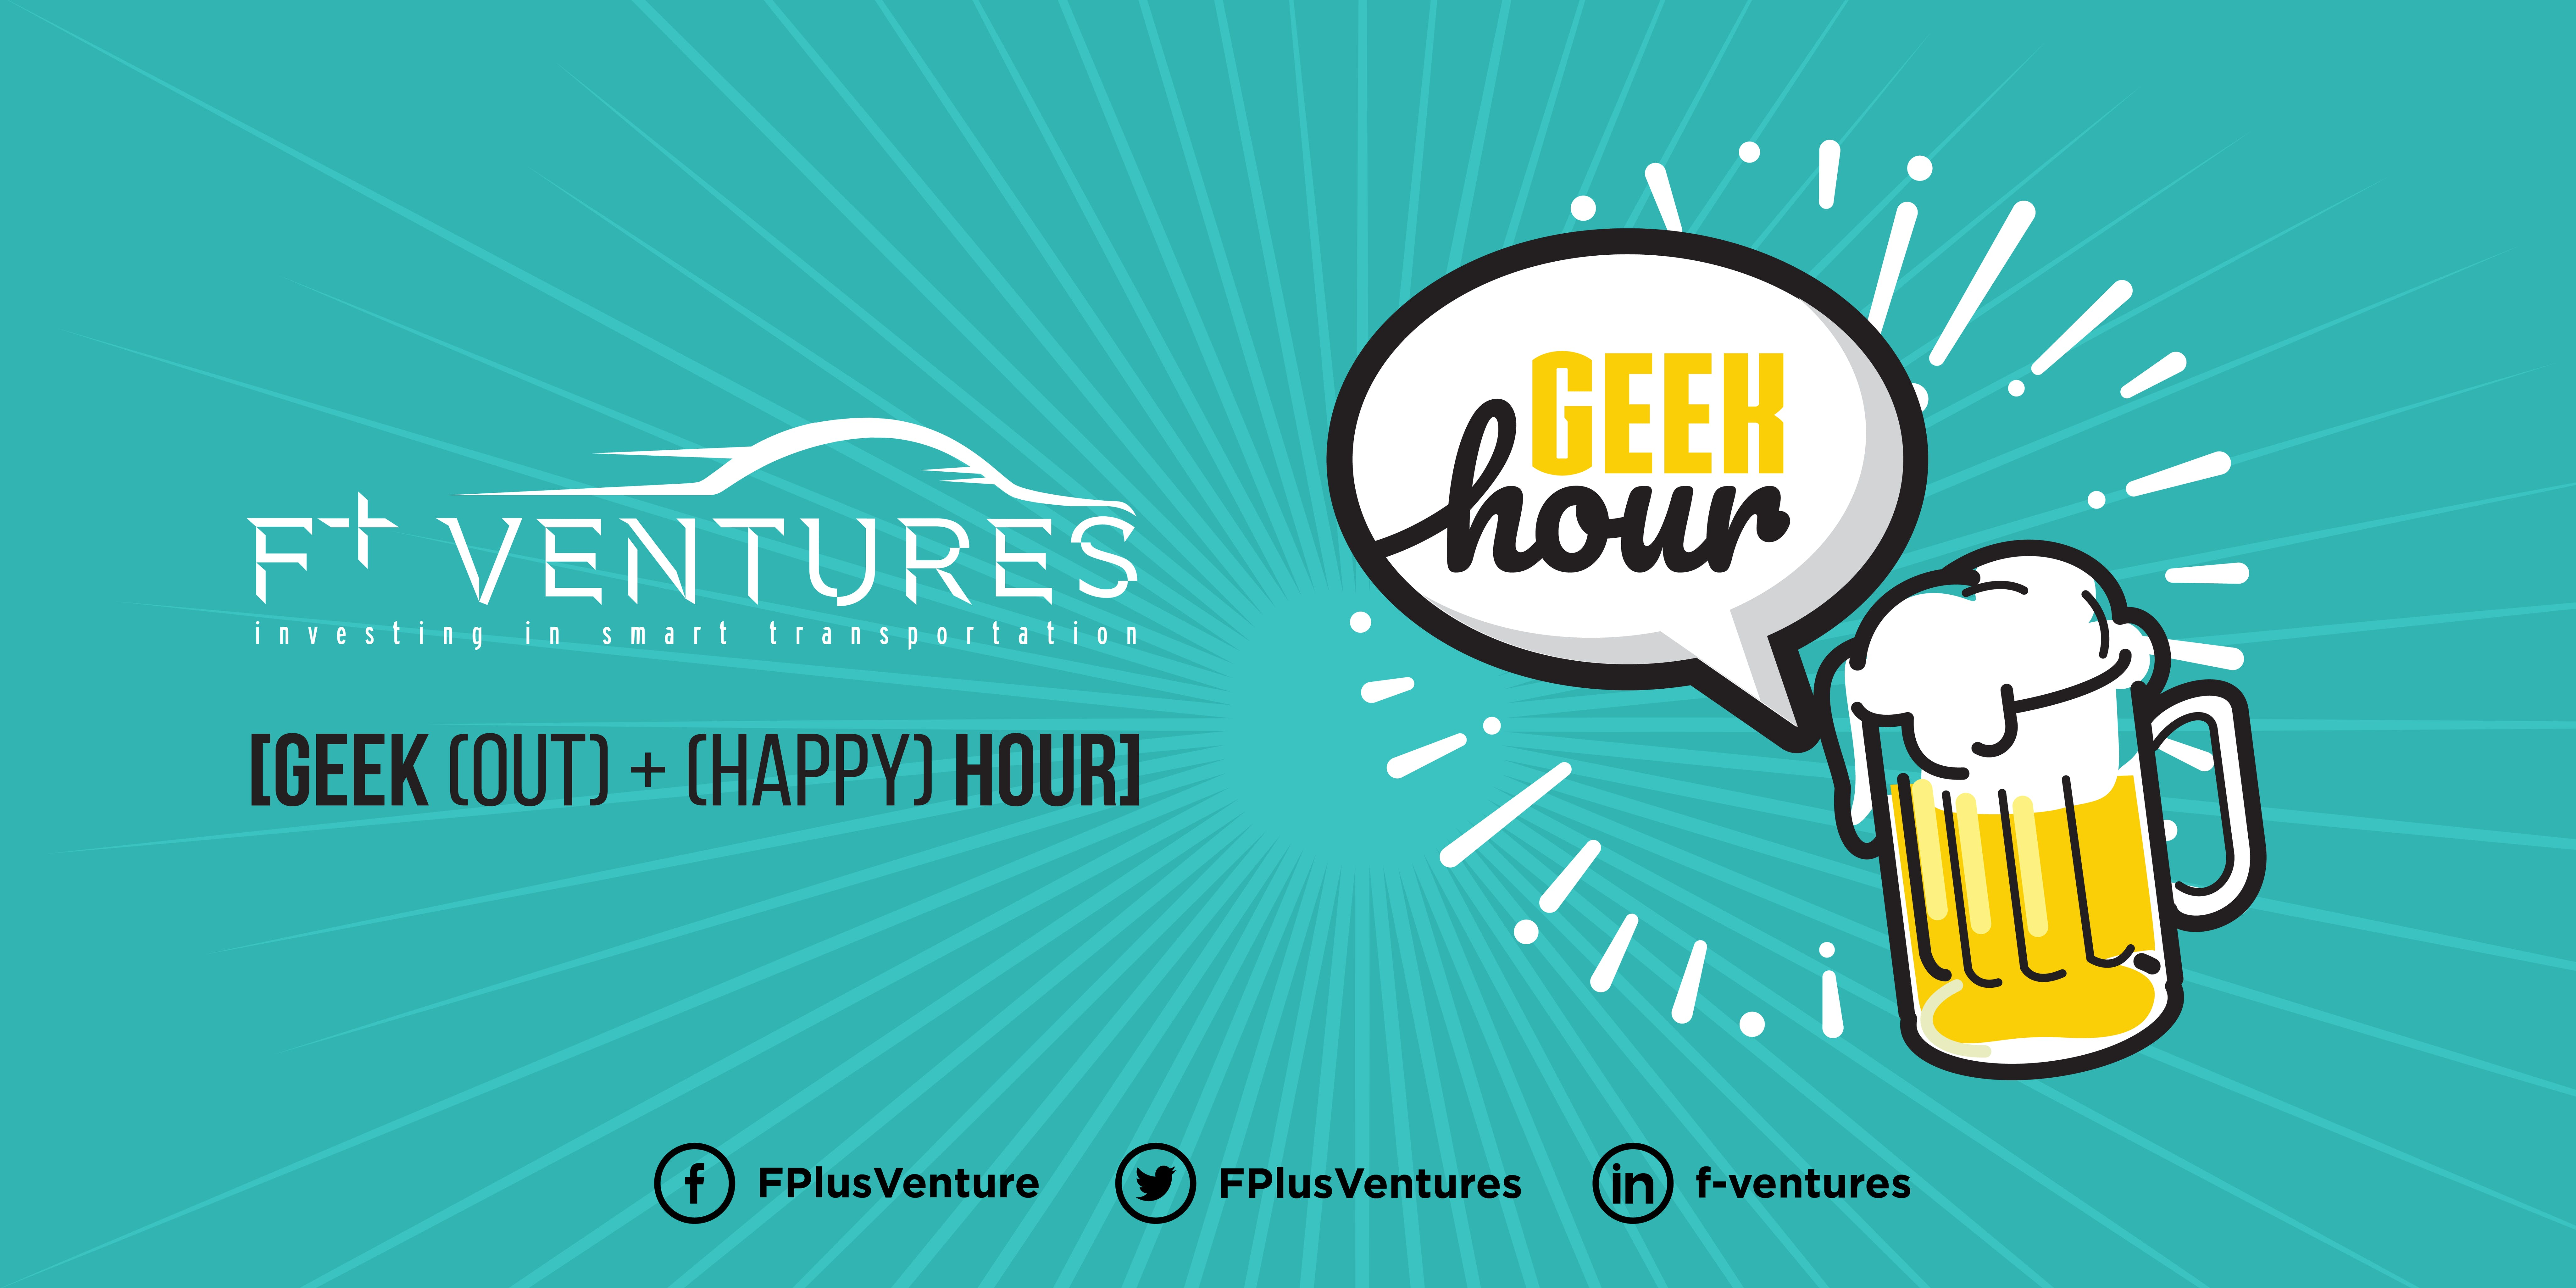 F+ Ventures Geek Hour - Discovering the Secre